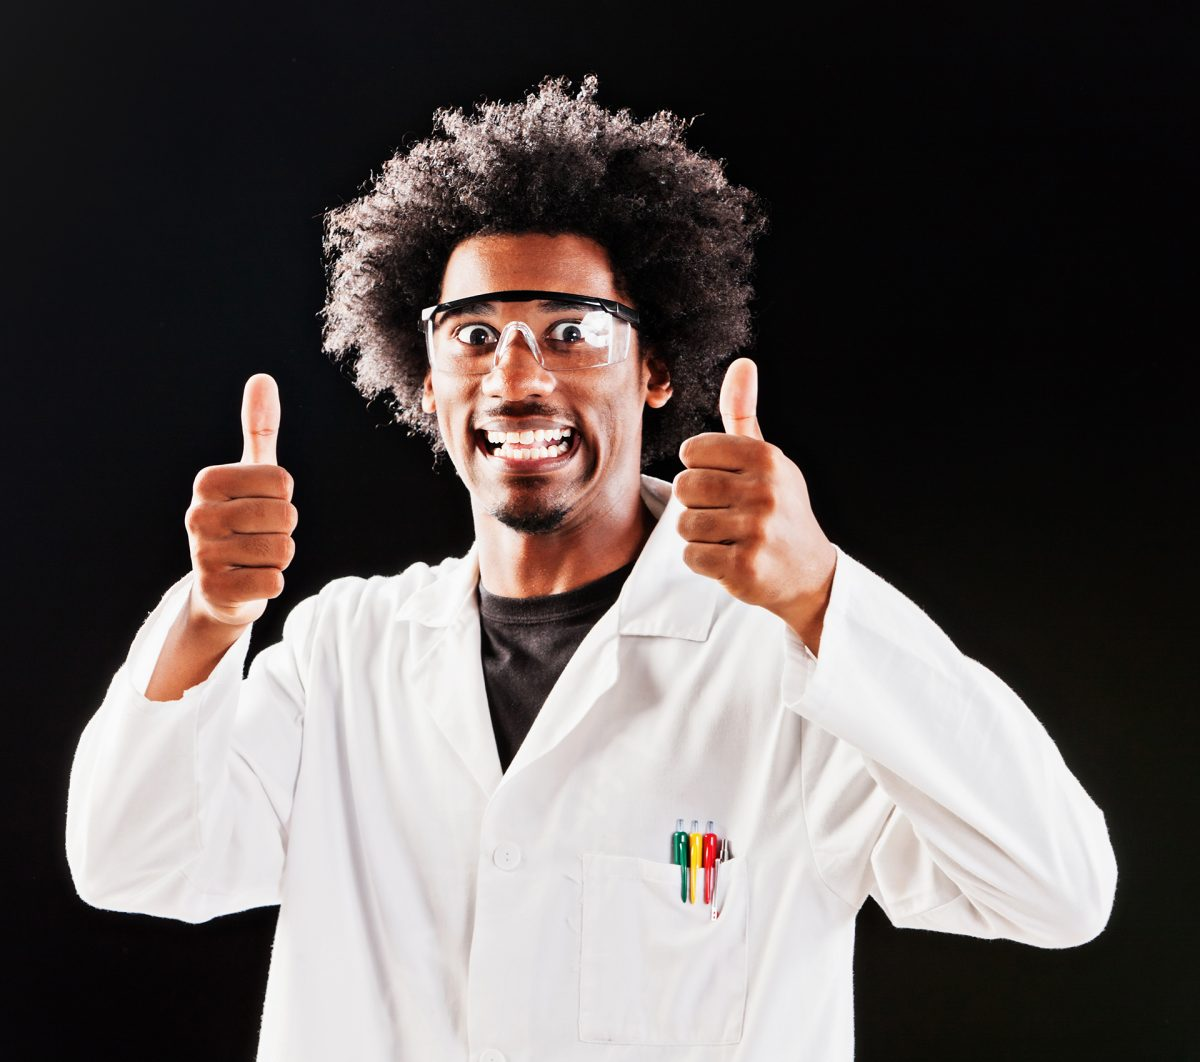 Male scientist giving thumbs up and smiling